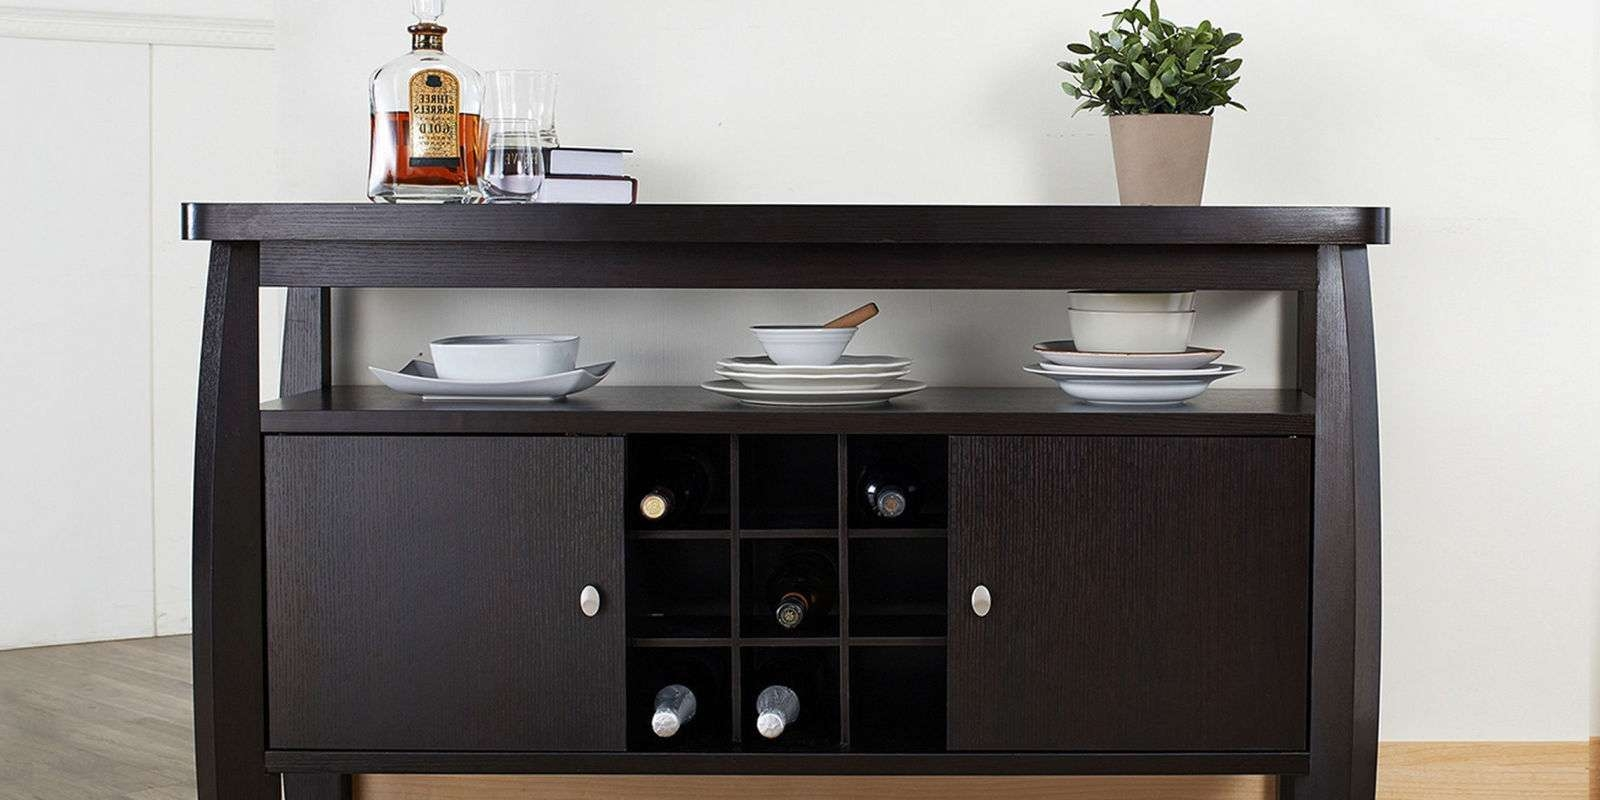 11 Best Sideboards And Buffets In 2018 – Reviews Of Sideboards Pertaining To Sideboards Buffet Furniture (View 1 of 20)